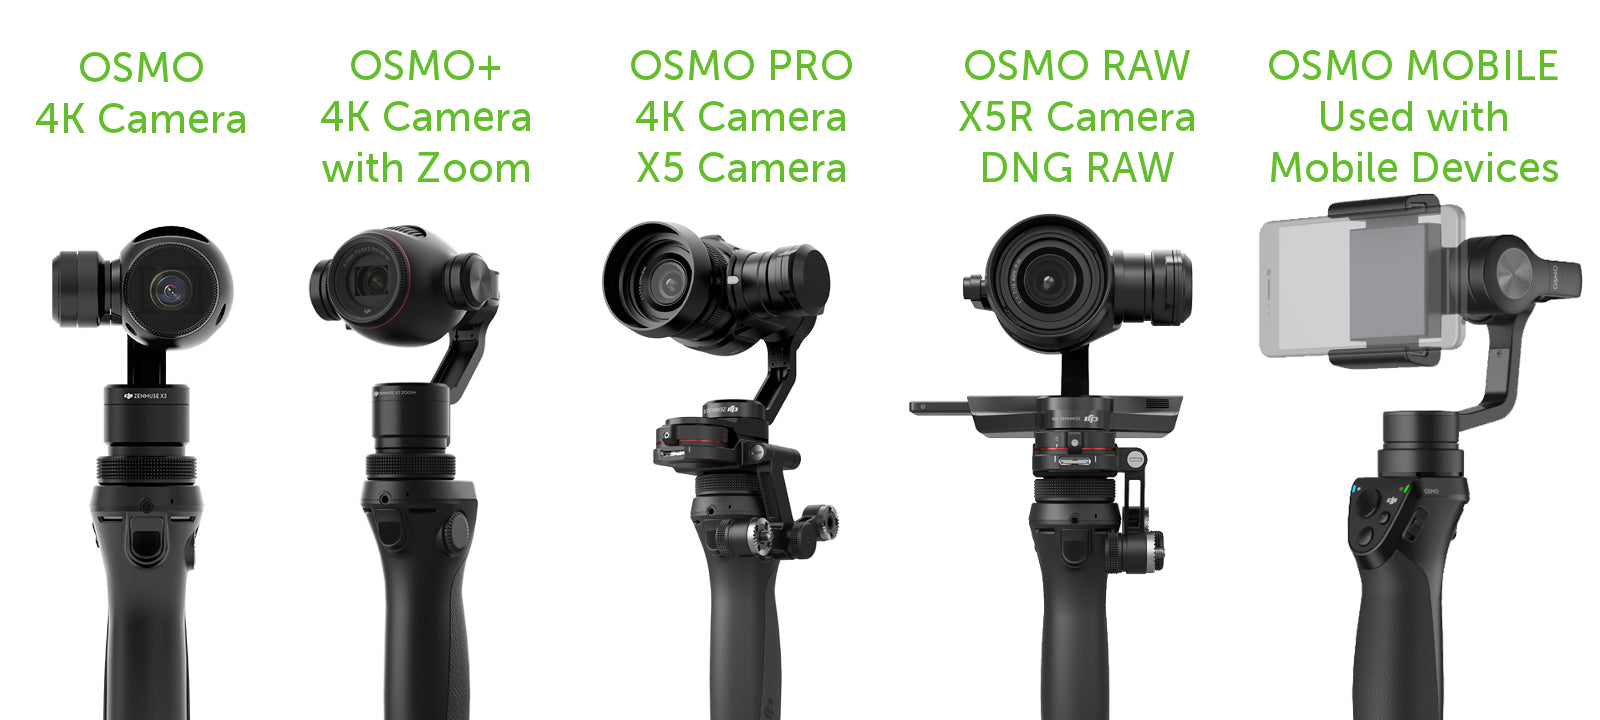 osmo-comparison-table